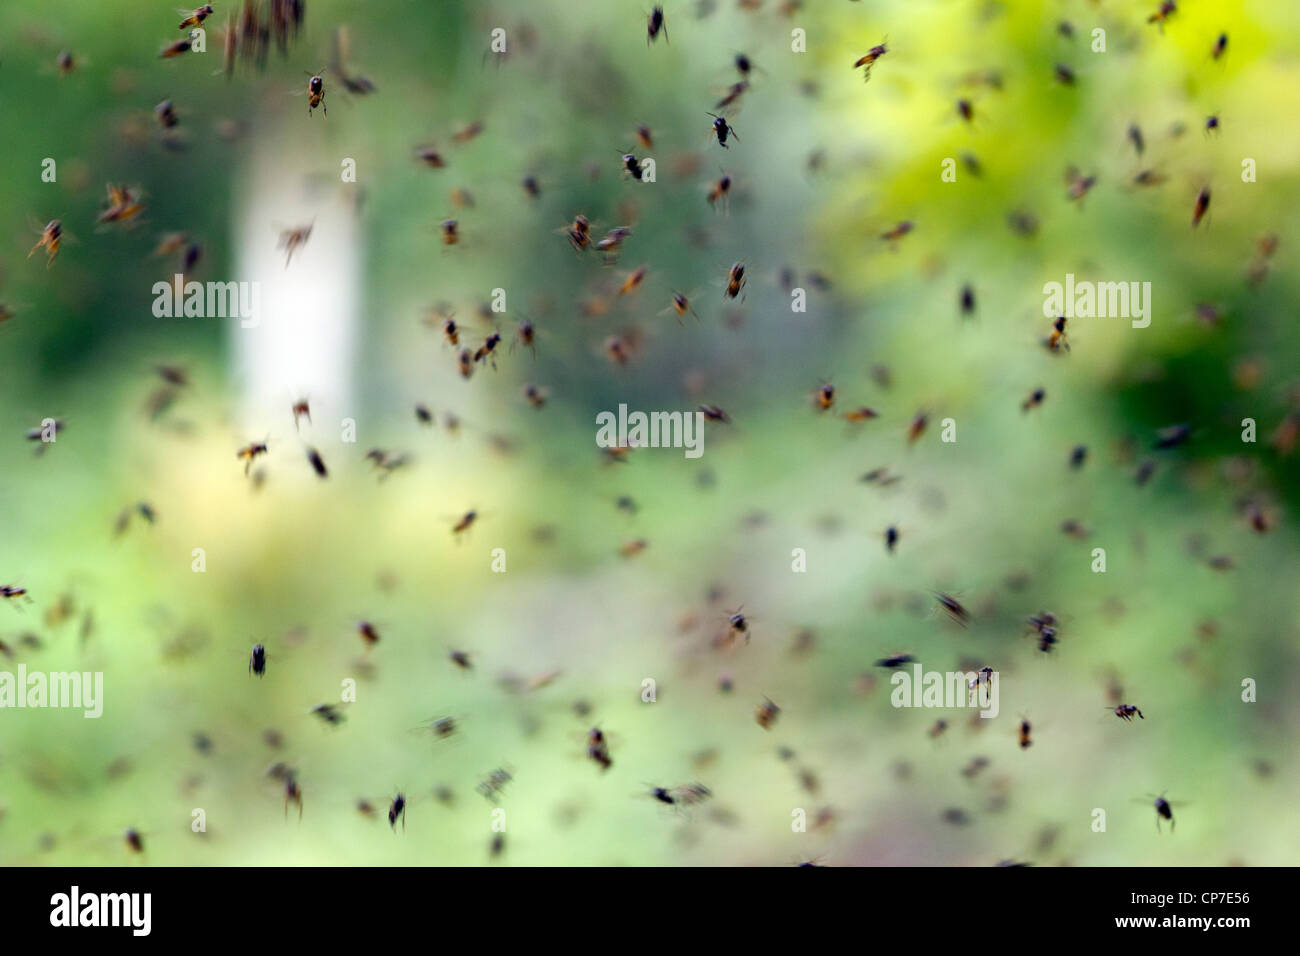 Big swarm of sweat bees in the rainforest in Western Ecuador - Stock Image